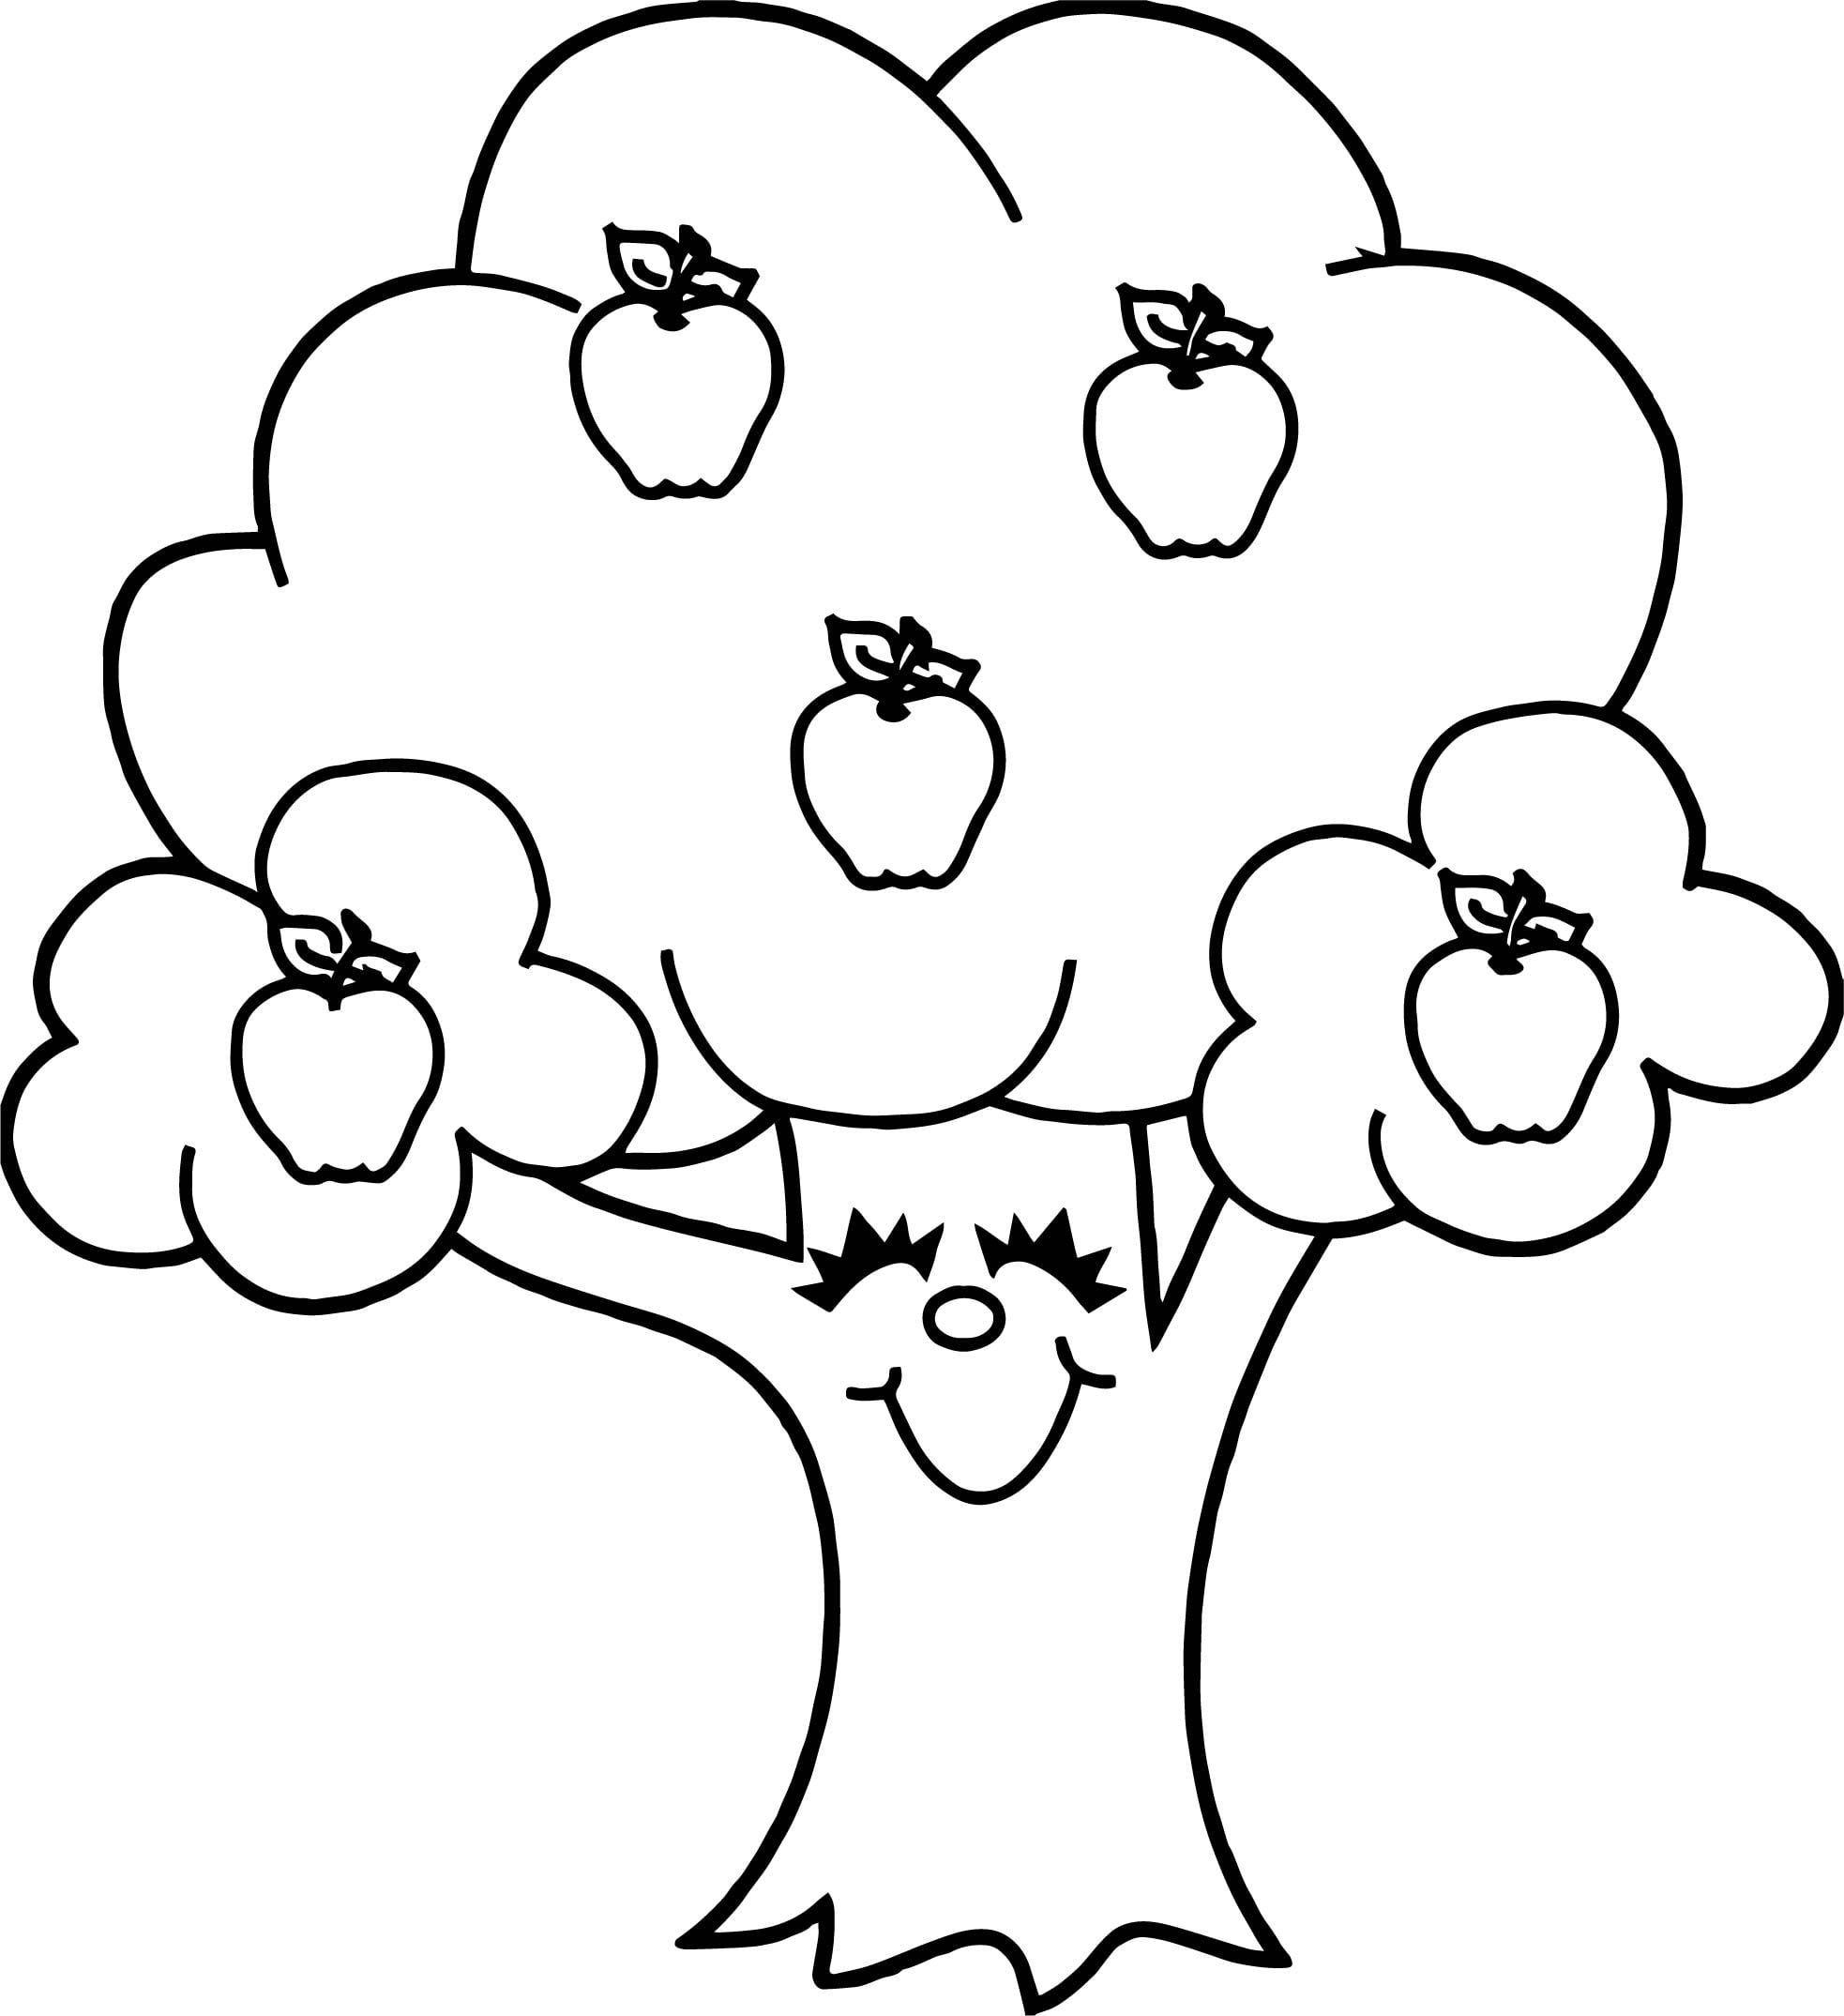 Funny Apple Tree Coloring Epic Apple Tree Coloring Page